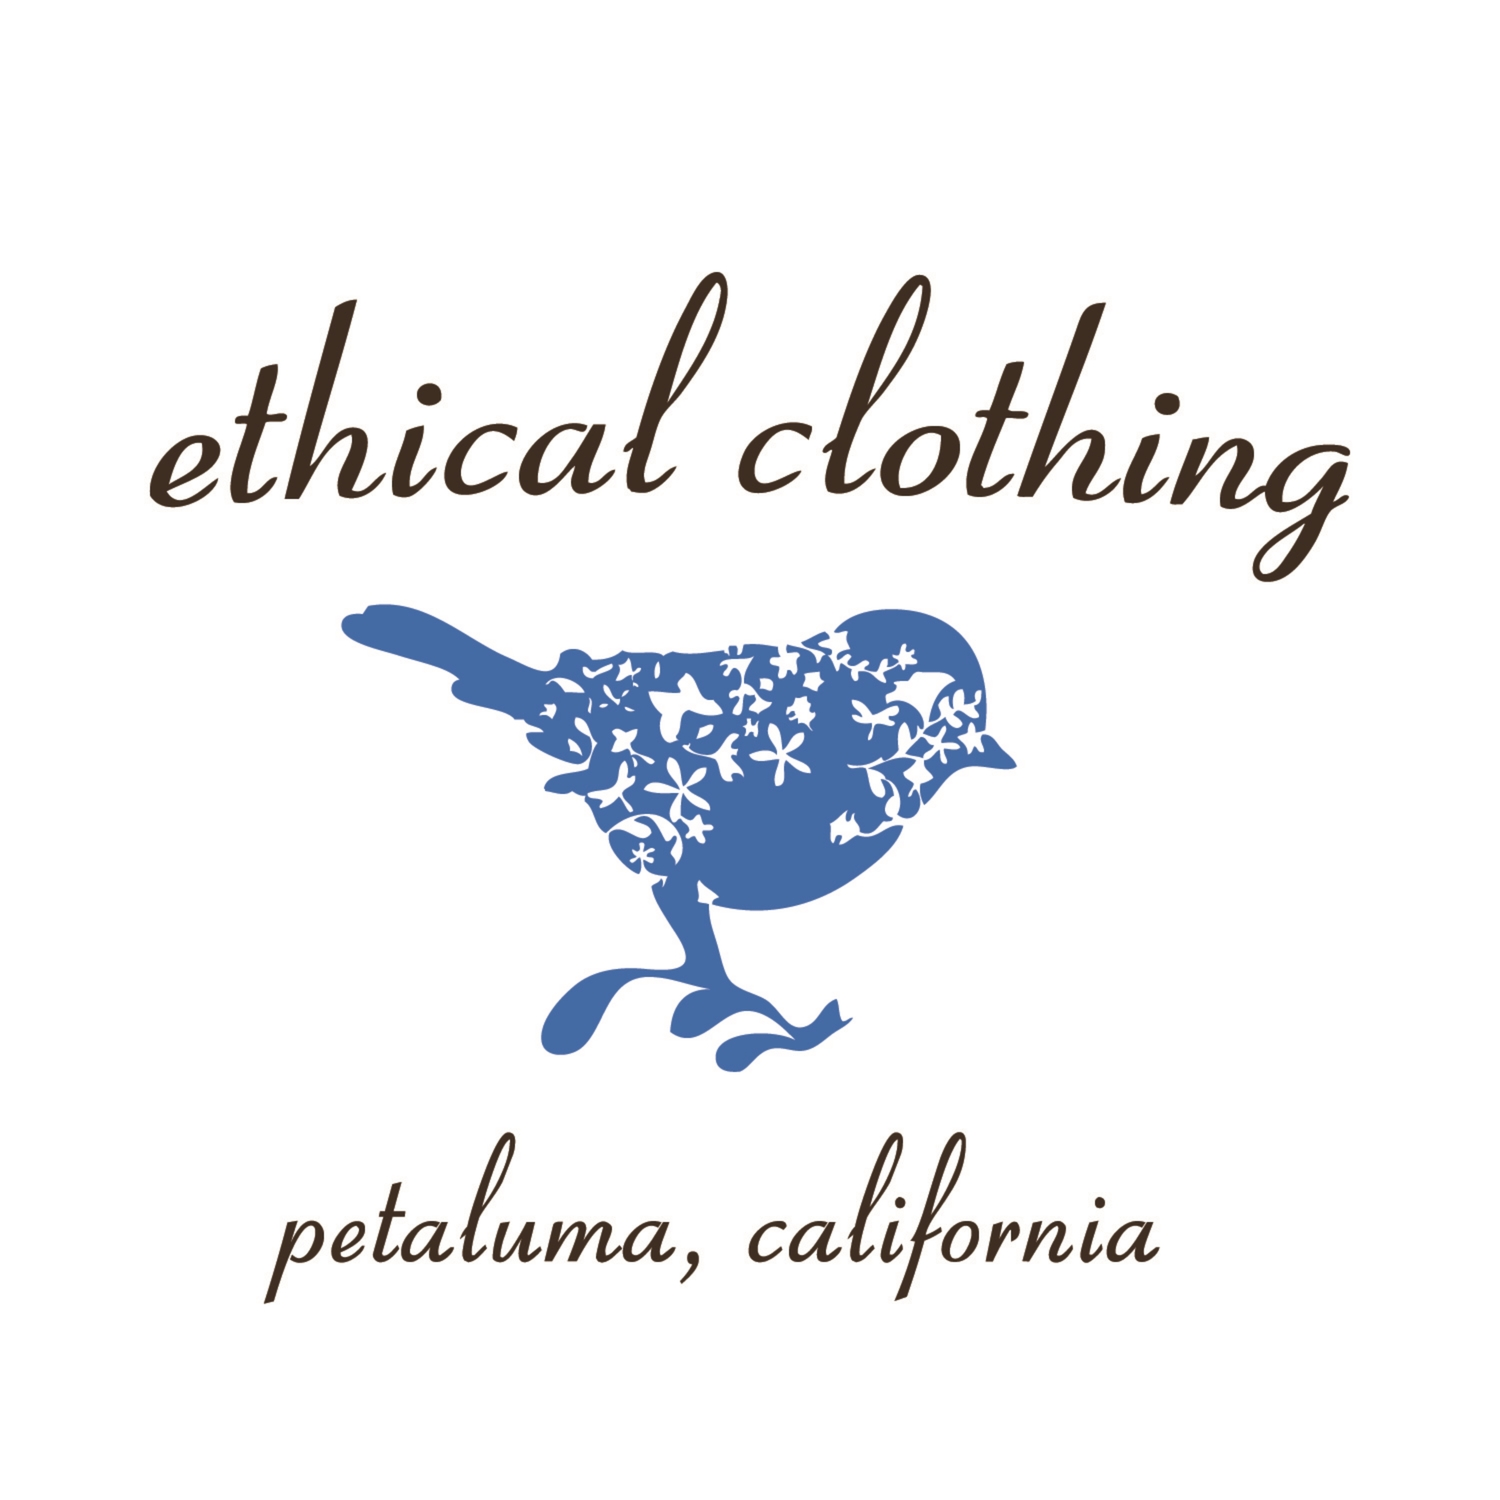 E= ethical clothing